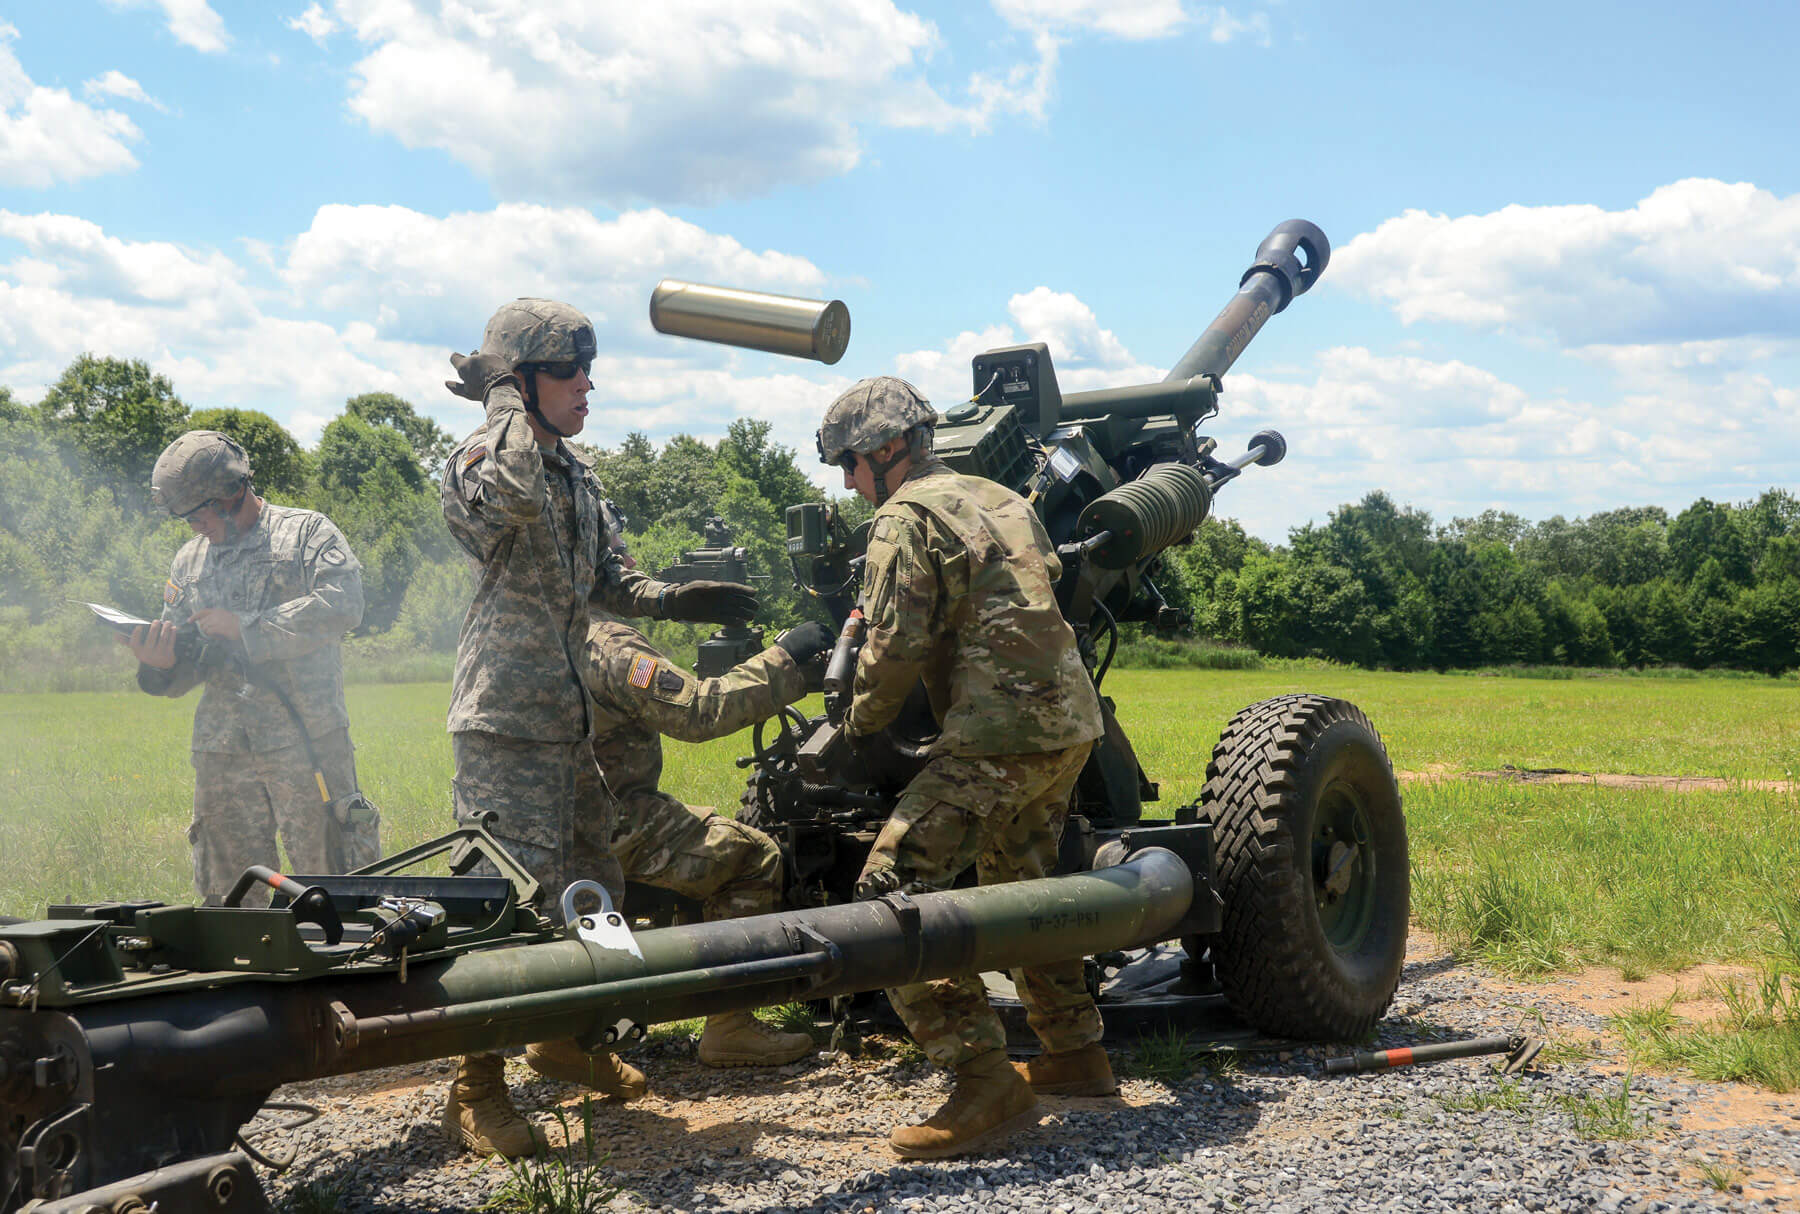 Instructors of the 166th Regional Training Institute located at Fort Indiantown Gap, the only live-fire, maneuver military training facility in Pennsylvania, offering more than 17,000 acres and 140 training areas and facilities, train National Guard Soldiers on an M119 Howitzer.